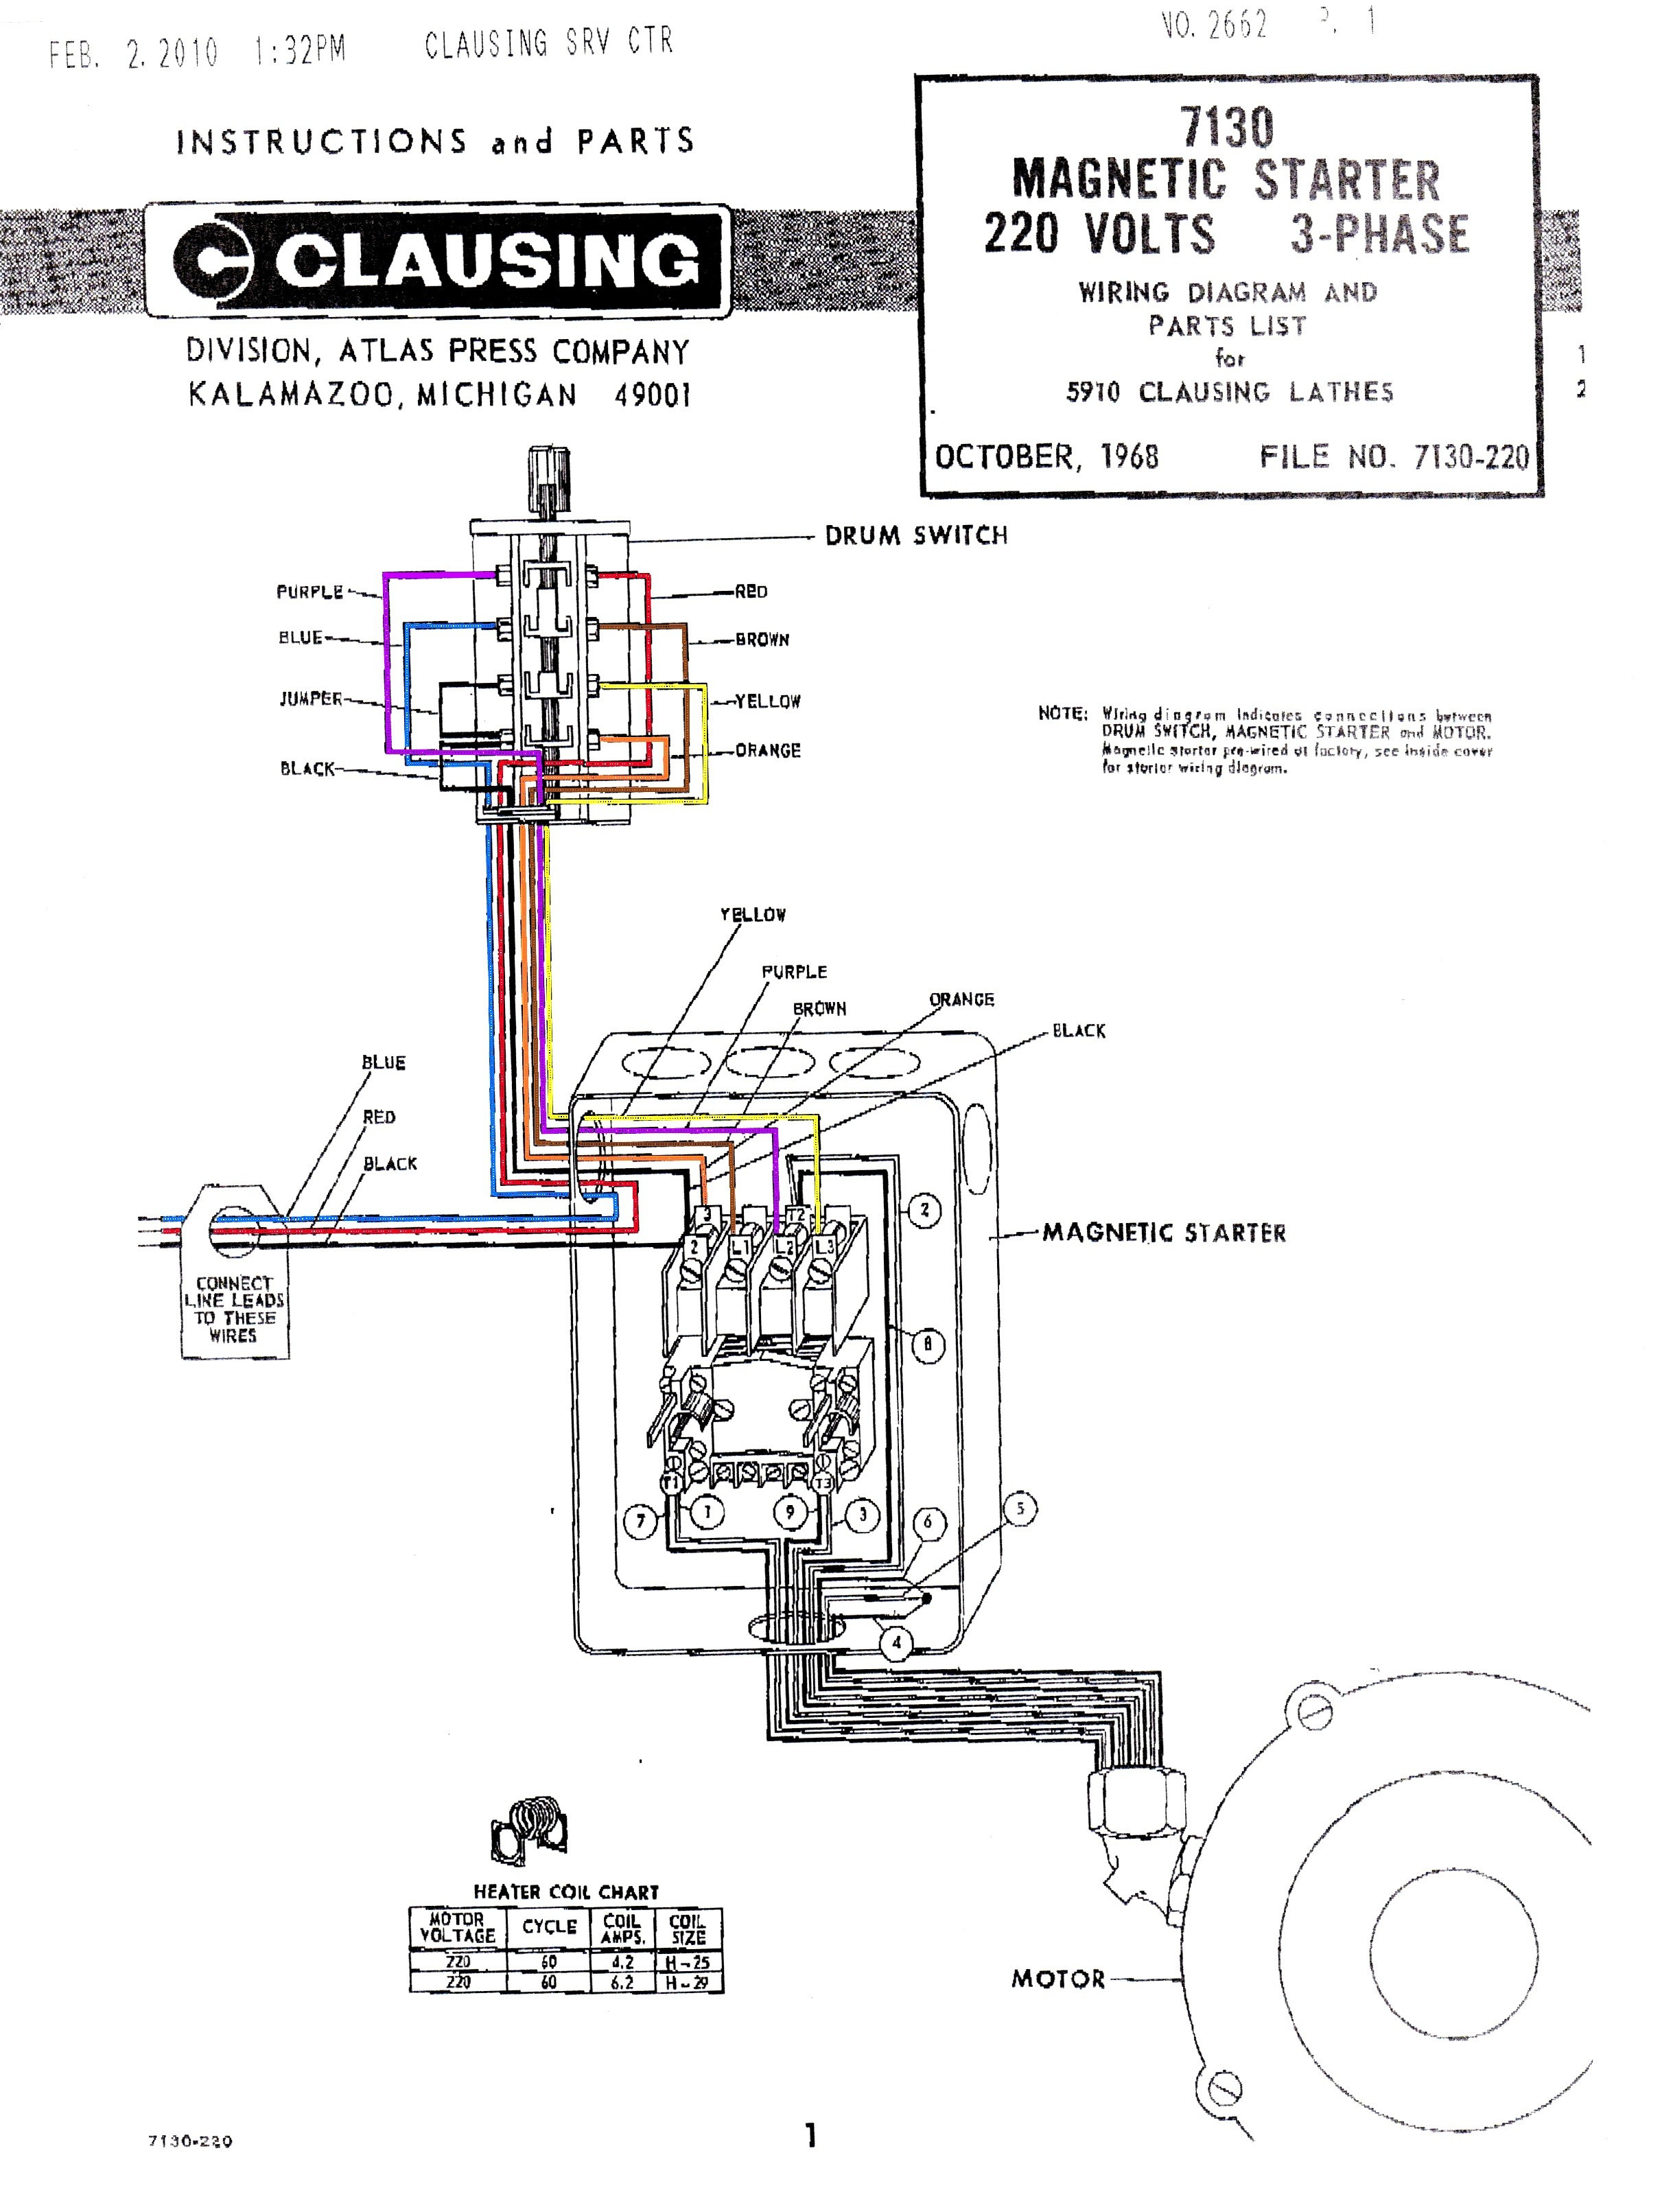 Mustang Starter Wiring Diagram on 71 mustang starter circuit, 71 mustang ford, 71 mustang fuel pump, 71 mustang relay, 71 mustang clock, 71 mustang welding diagram, 71 mustang door, 71 mustang wheels, 71 mustang radiator diagram, 71 mustang engine, 73 mustang starting circuit diagram,